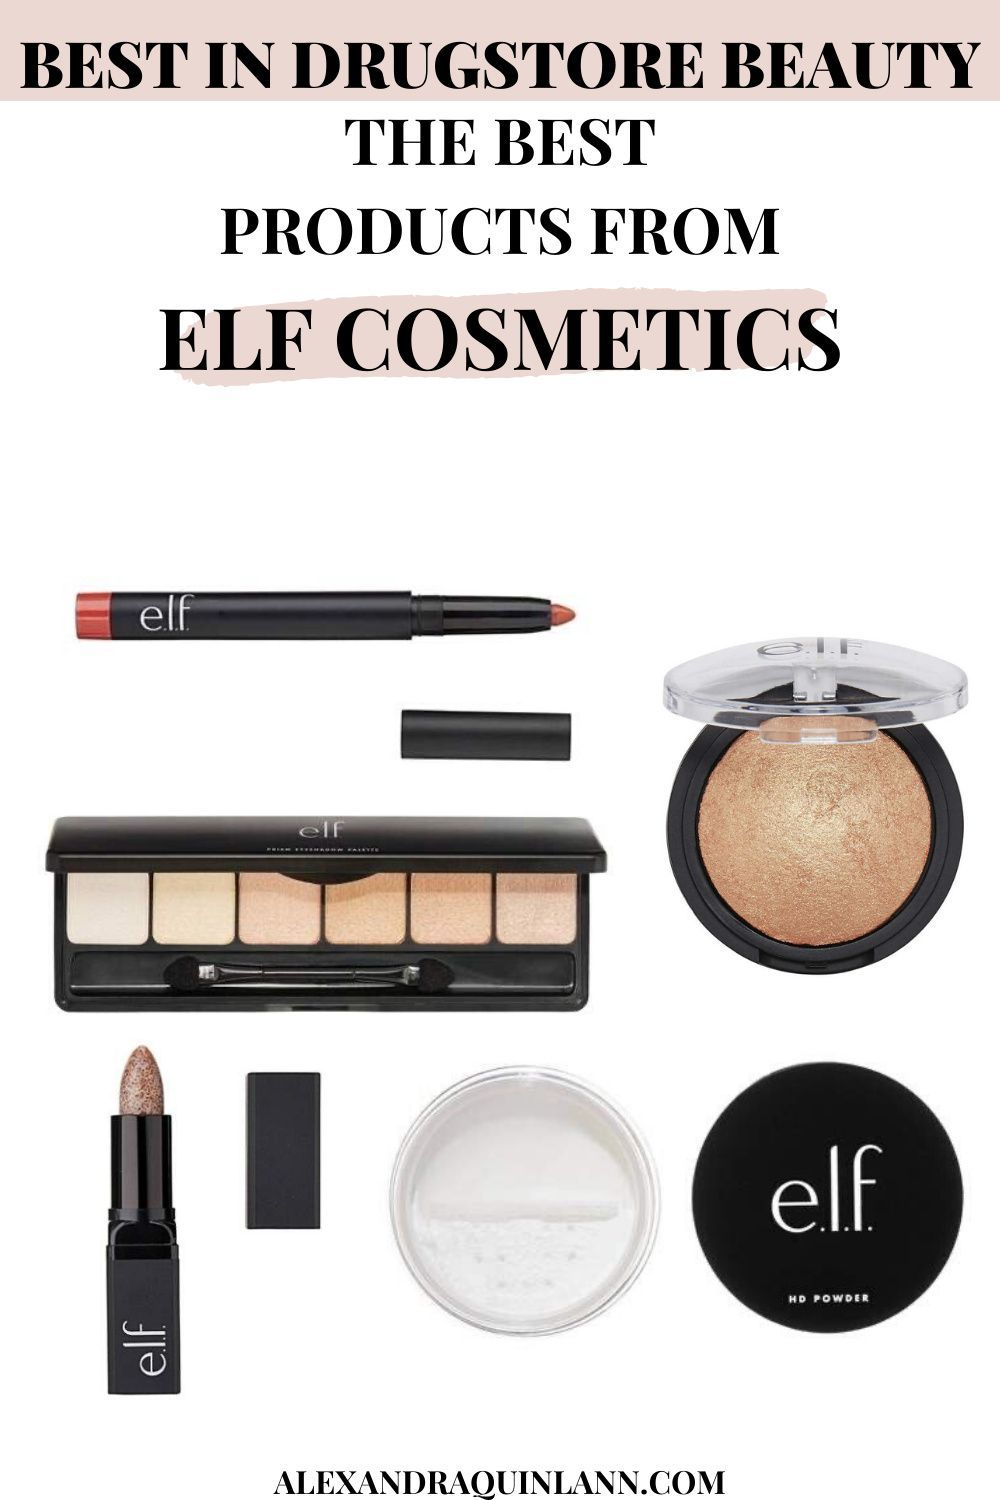 The Best Drugstore Makeup The best elf Cosmetics Products